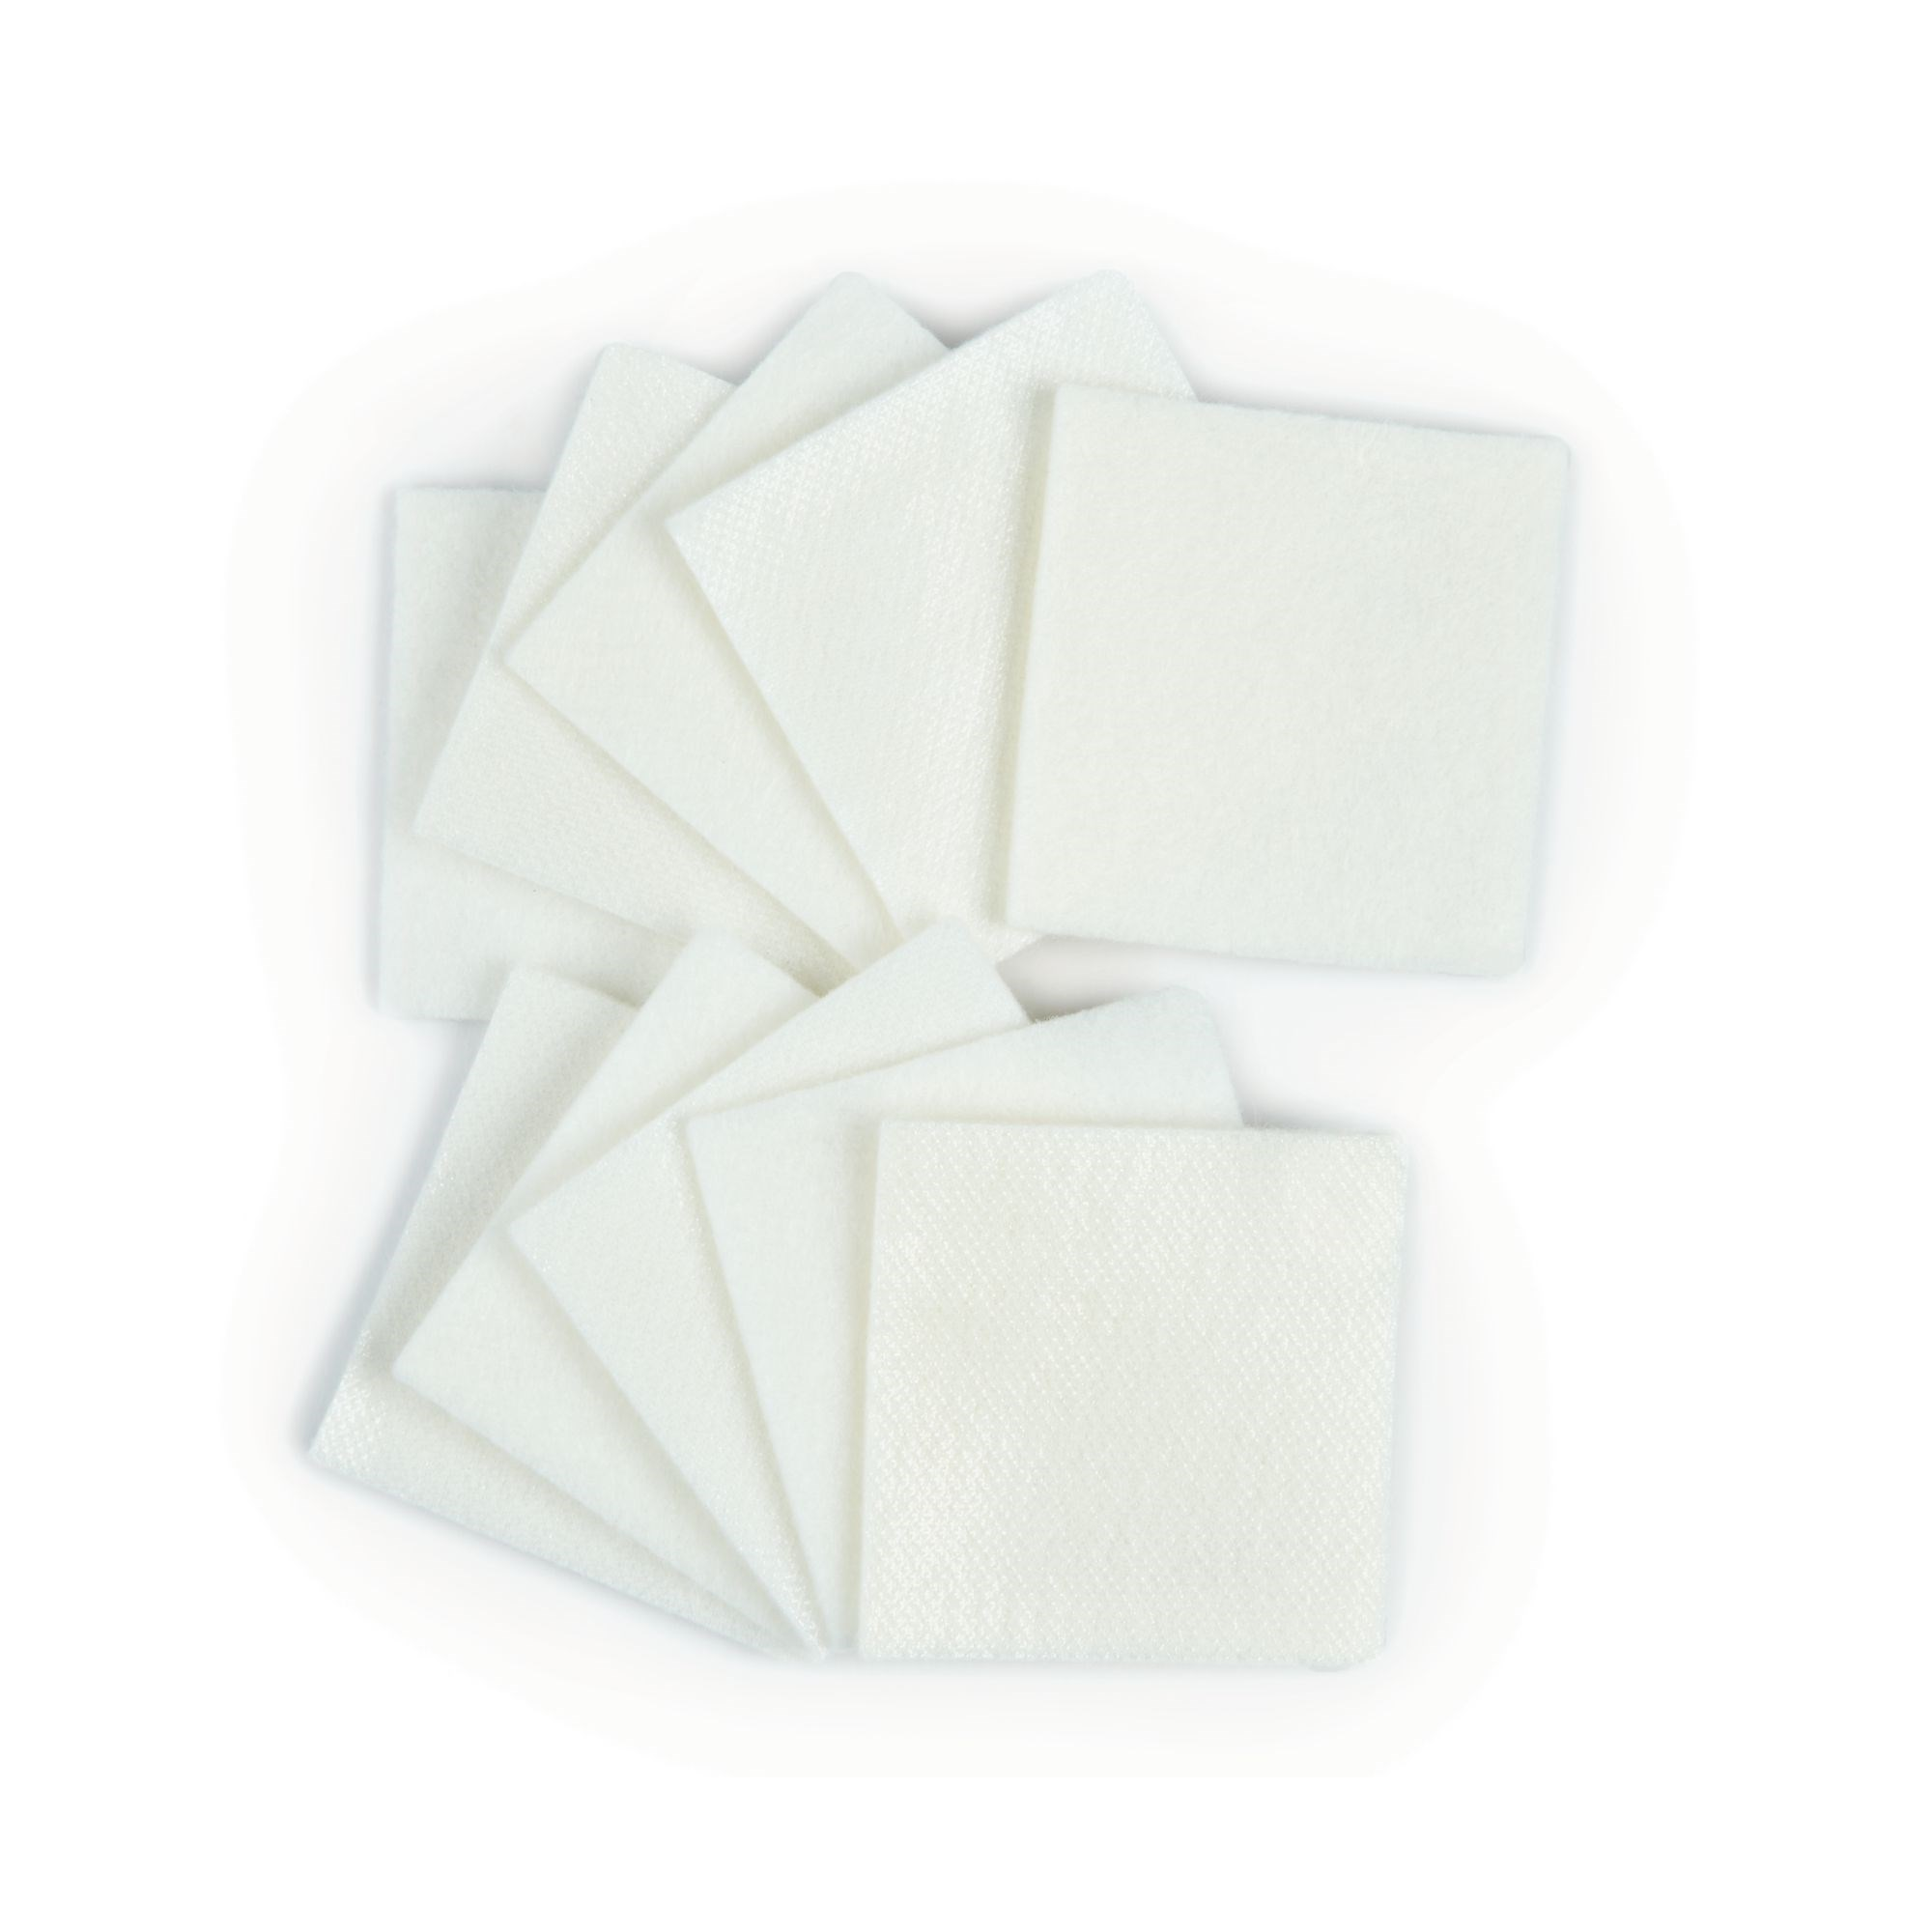 Non-Adherent Dressings - 100 x 100mm